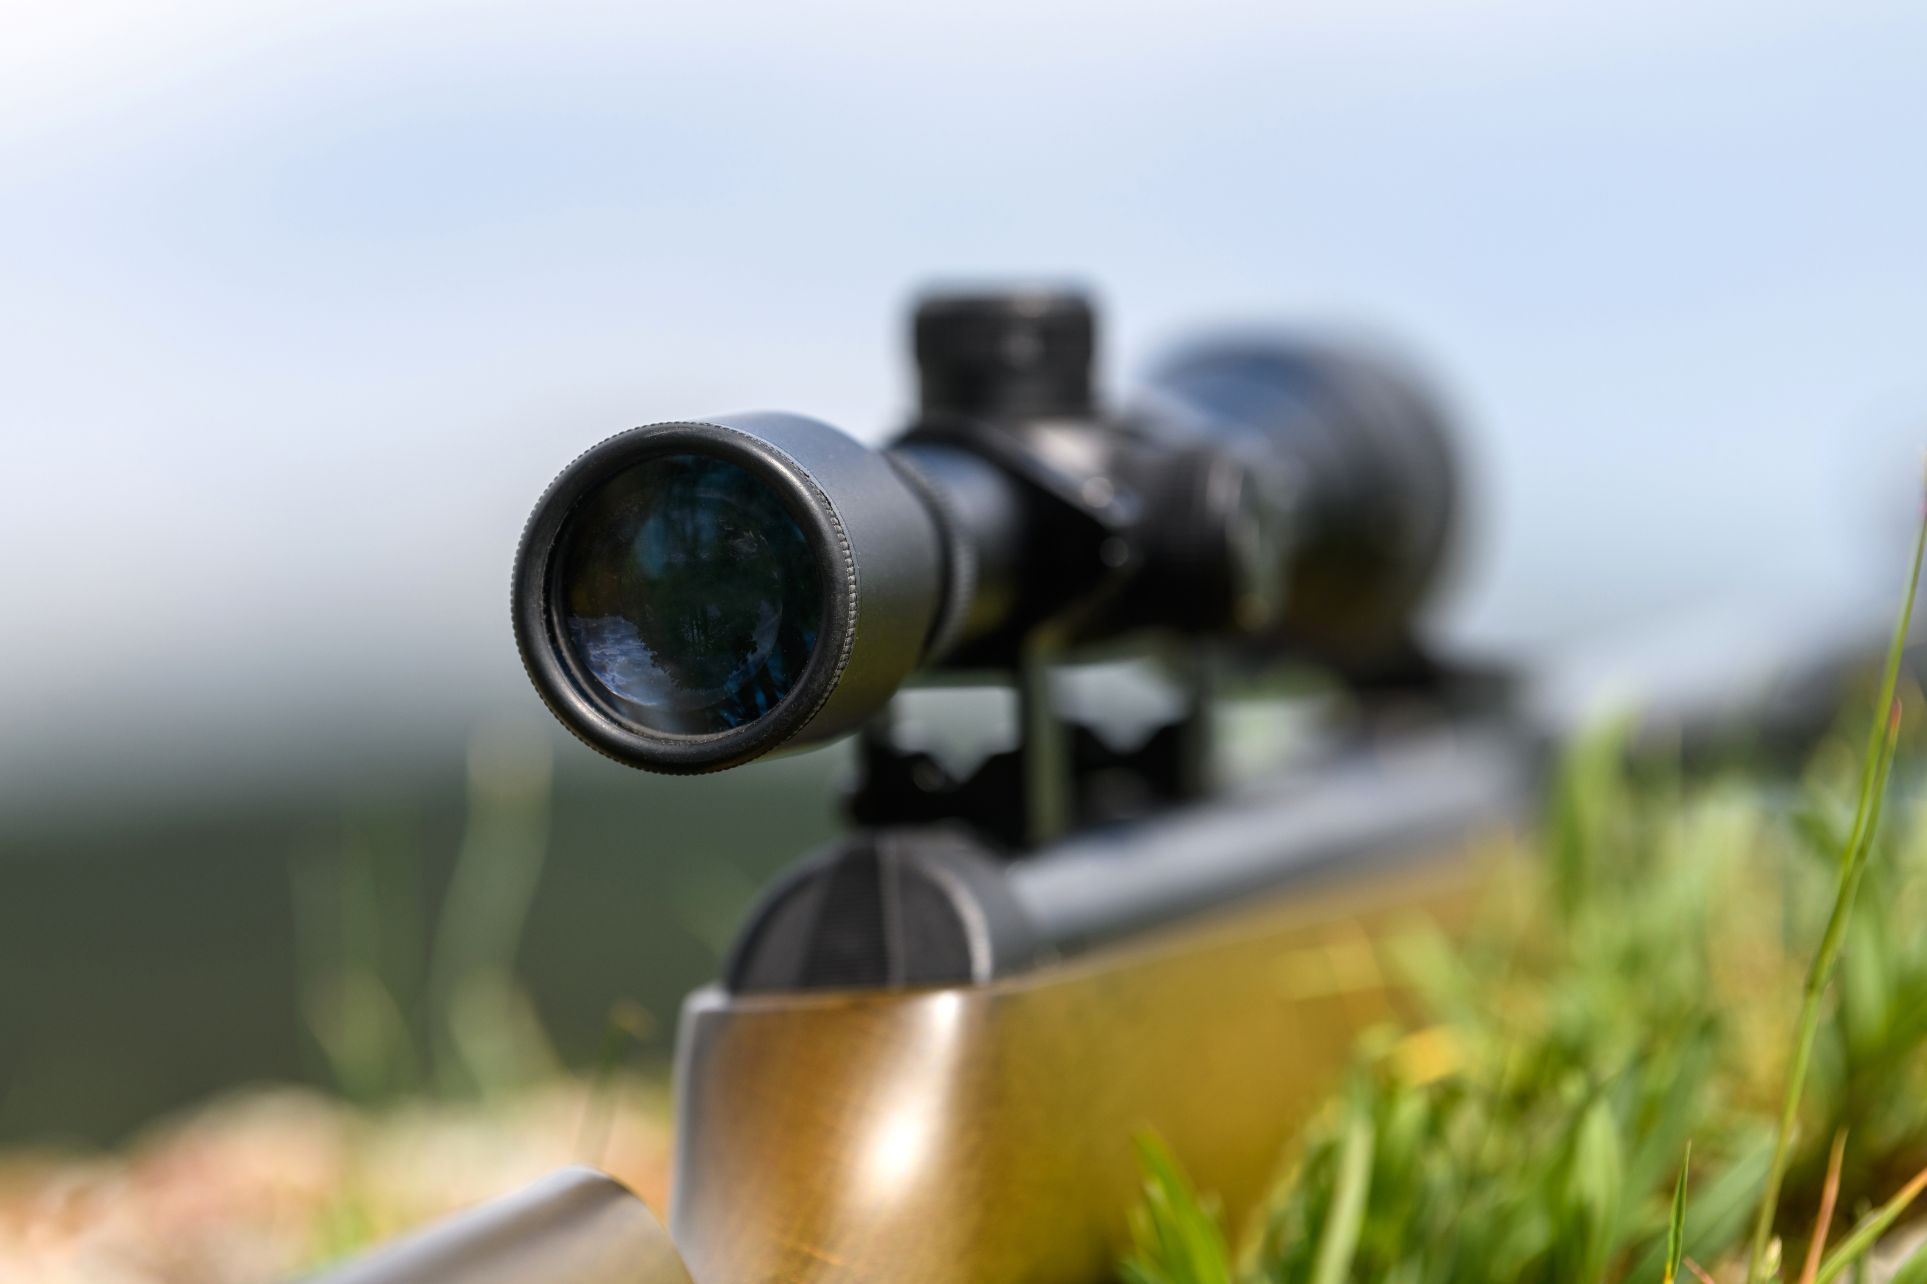 rifle scope on the street with blurry background h STV